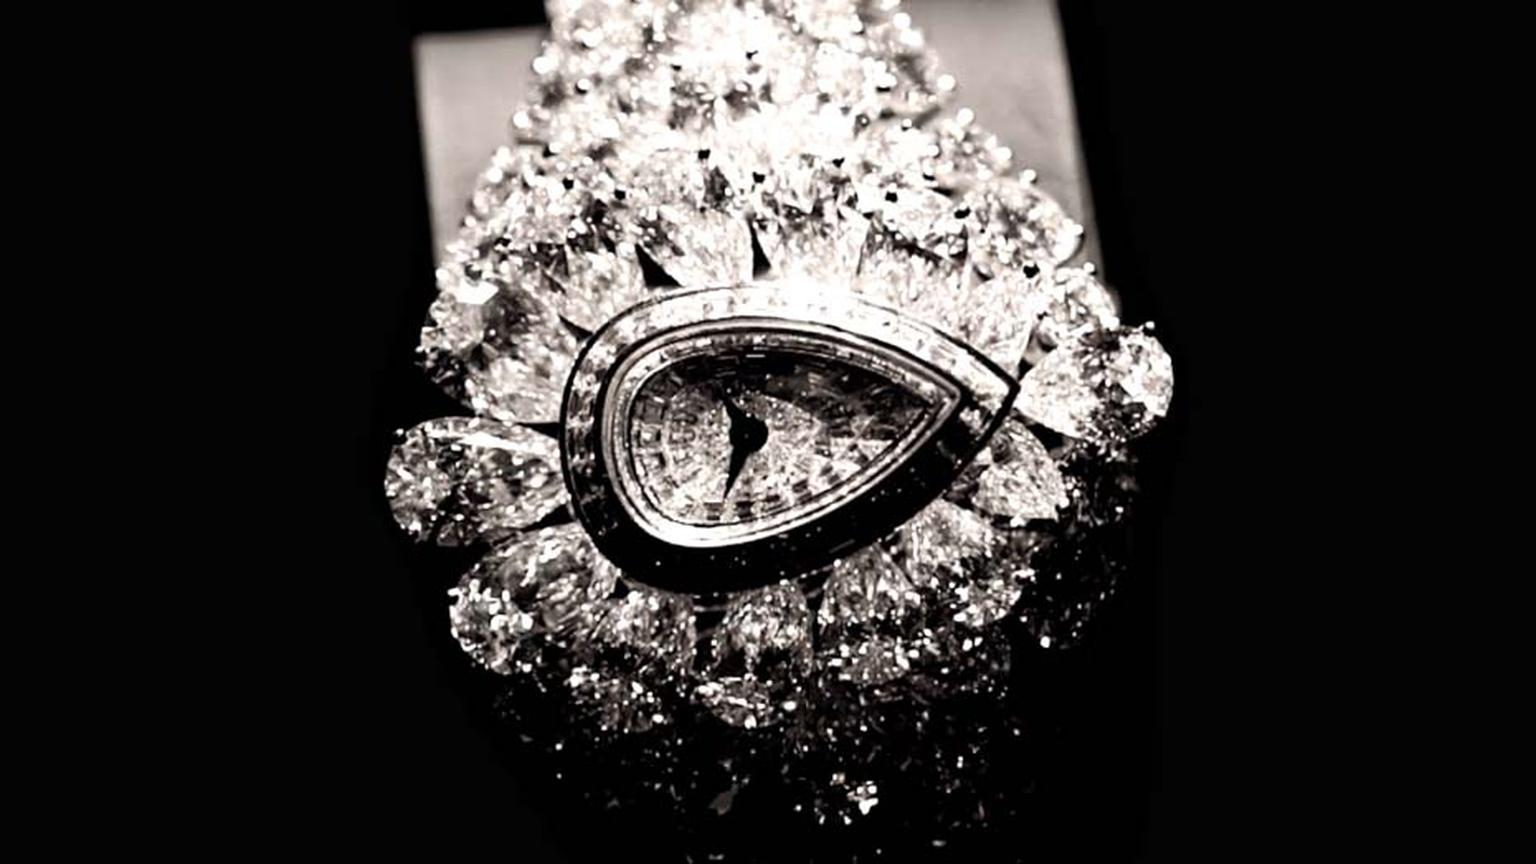 The transformable Graff Fascination watch, with its 152.96ct cluster of white diamonds, includes a rare 38.13 pear-shaped diamond (not shown here), which can be detached and placed in a special shank and worn as a ring. In yet another transformation, a di